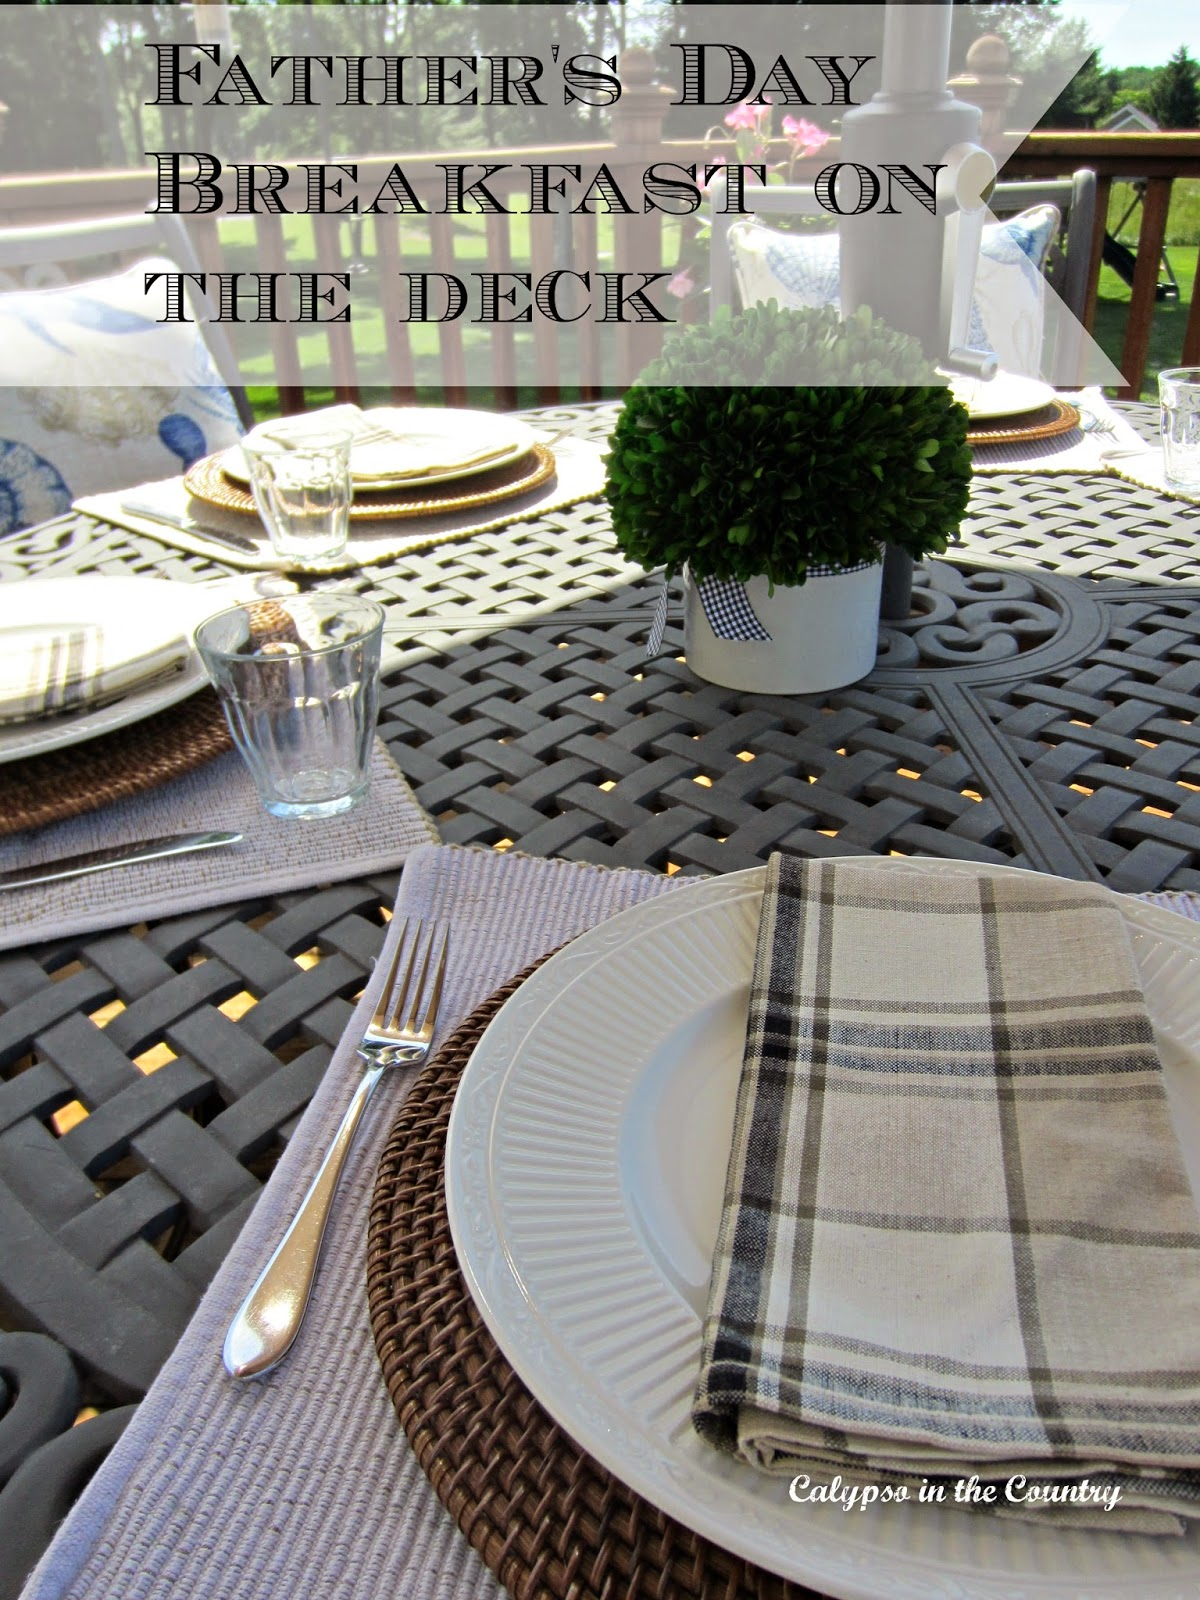 Father's Day Table Setting - Breakfast on the deck with Dad